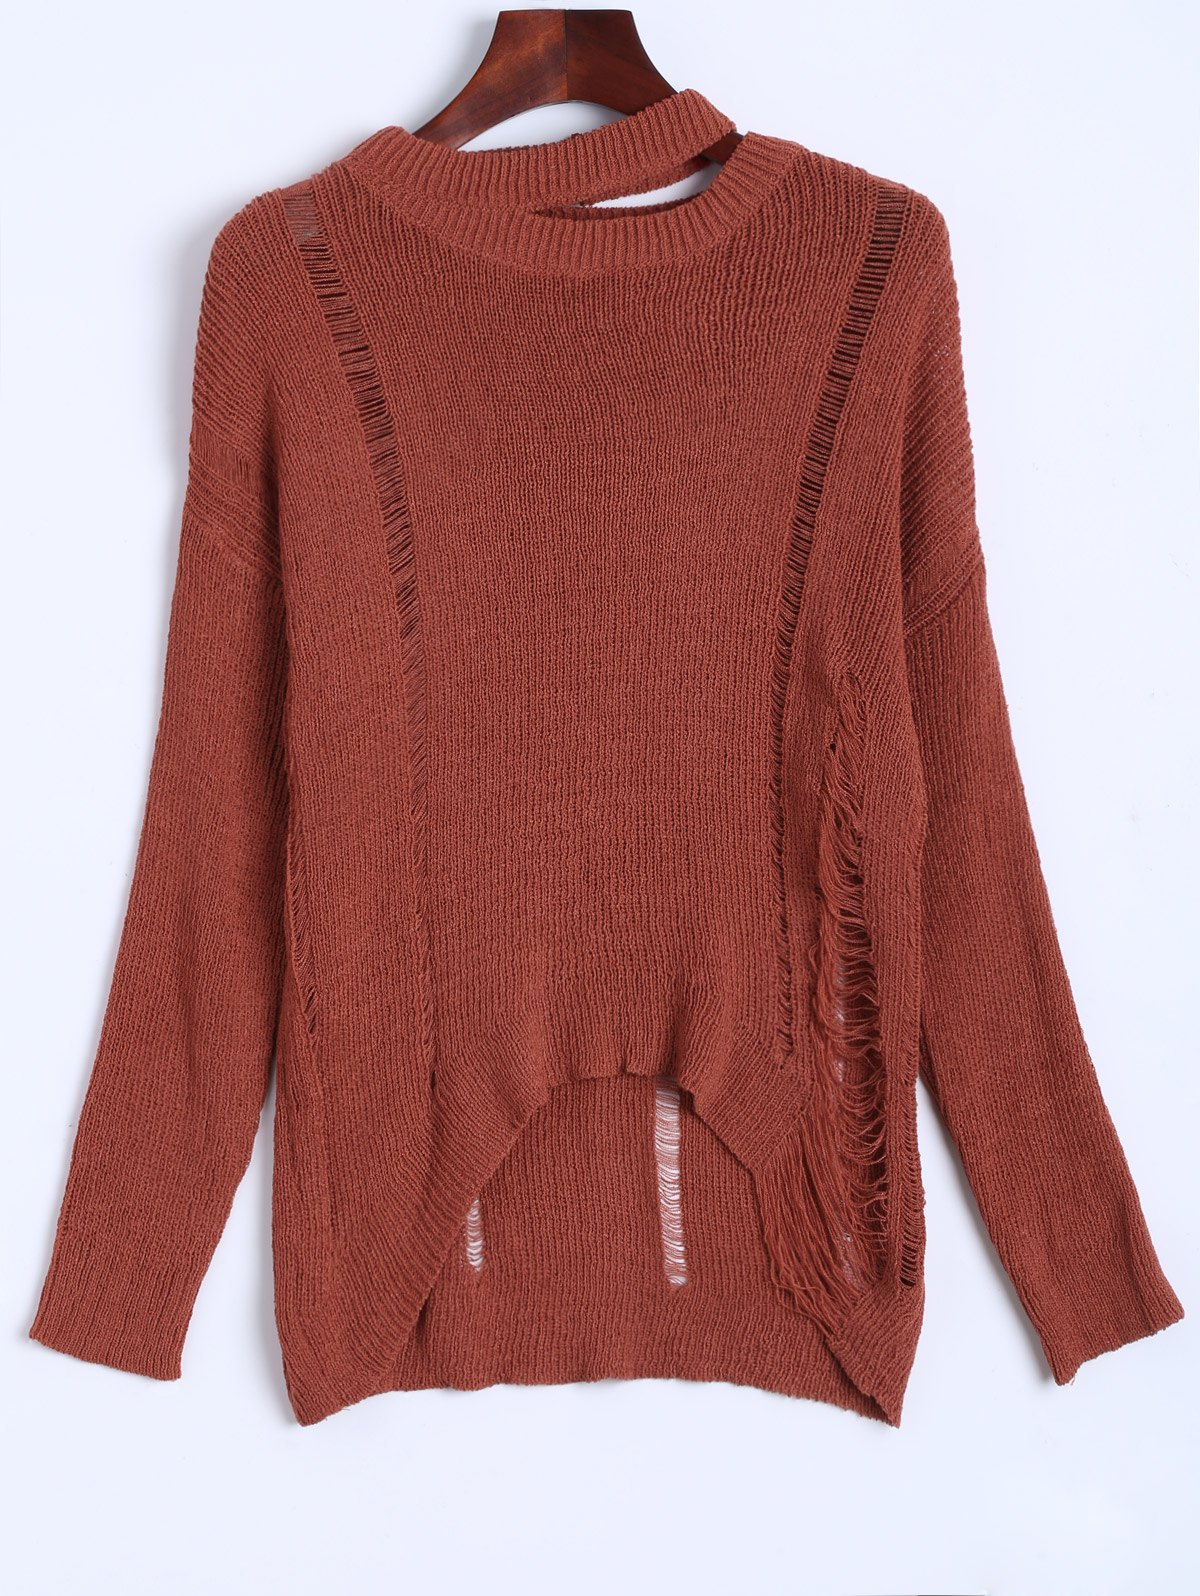 Slouchy Distressed Sweater